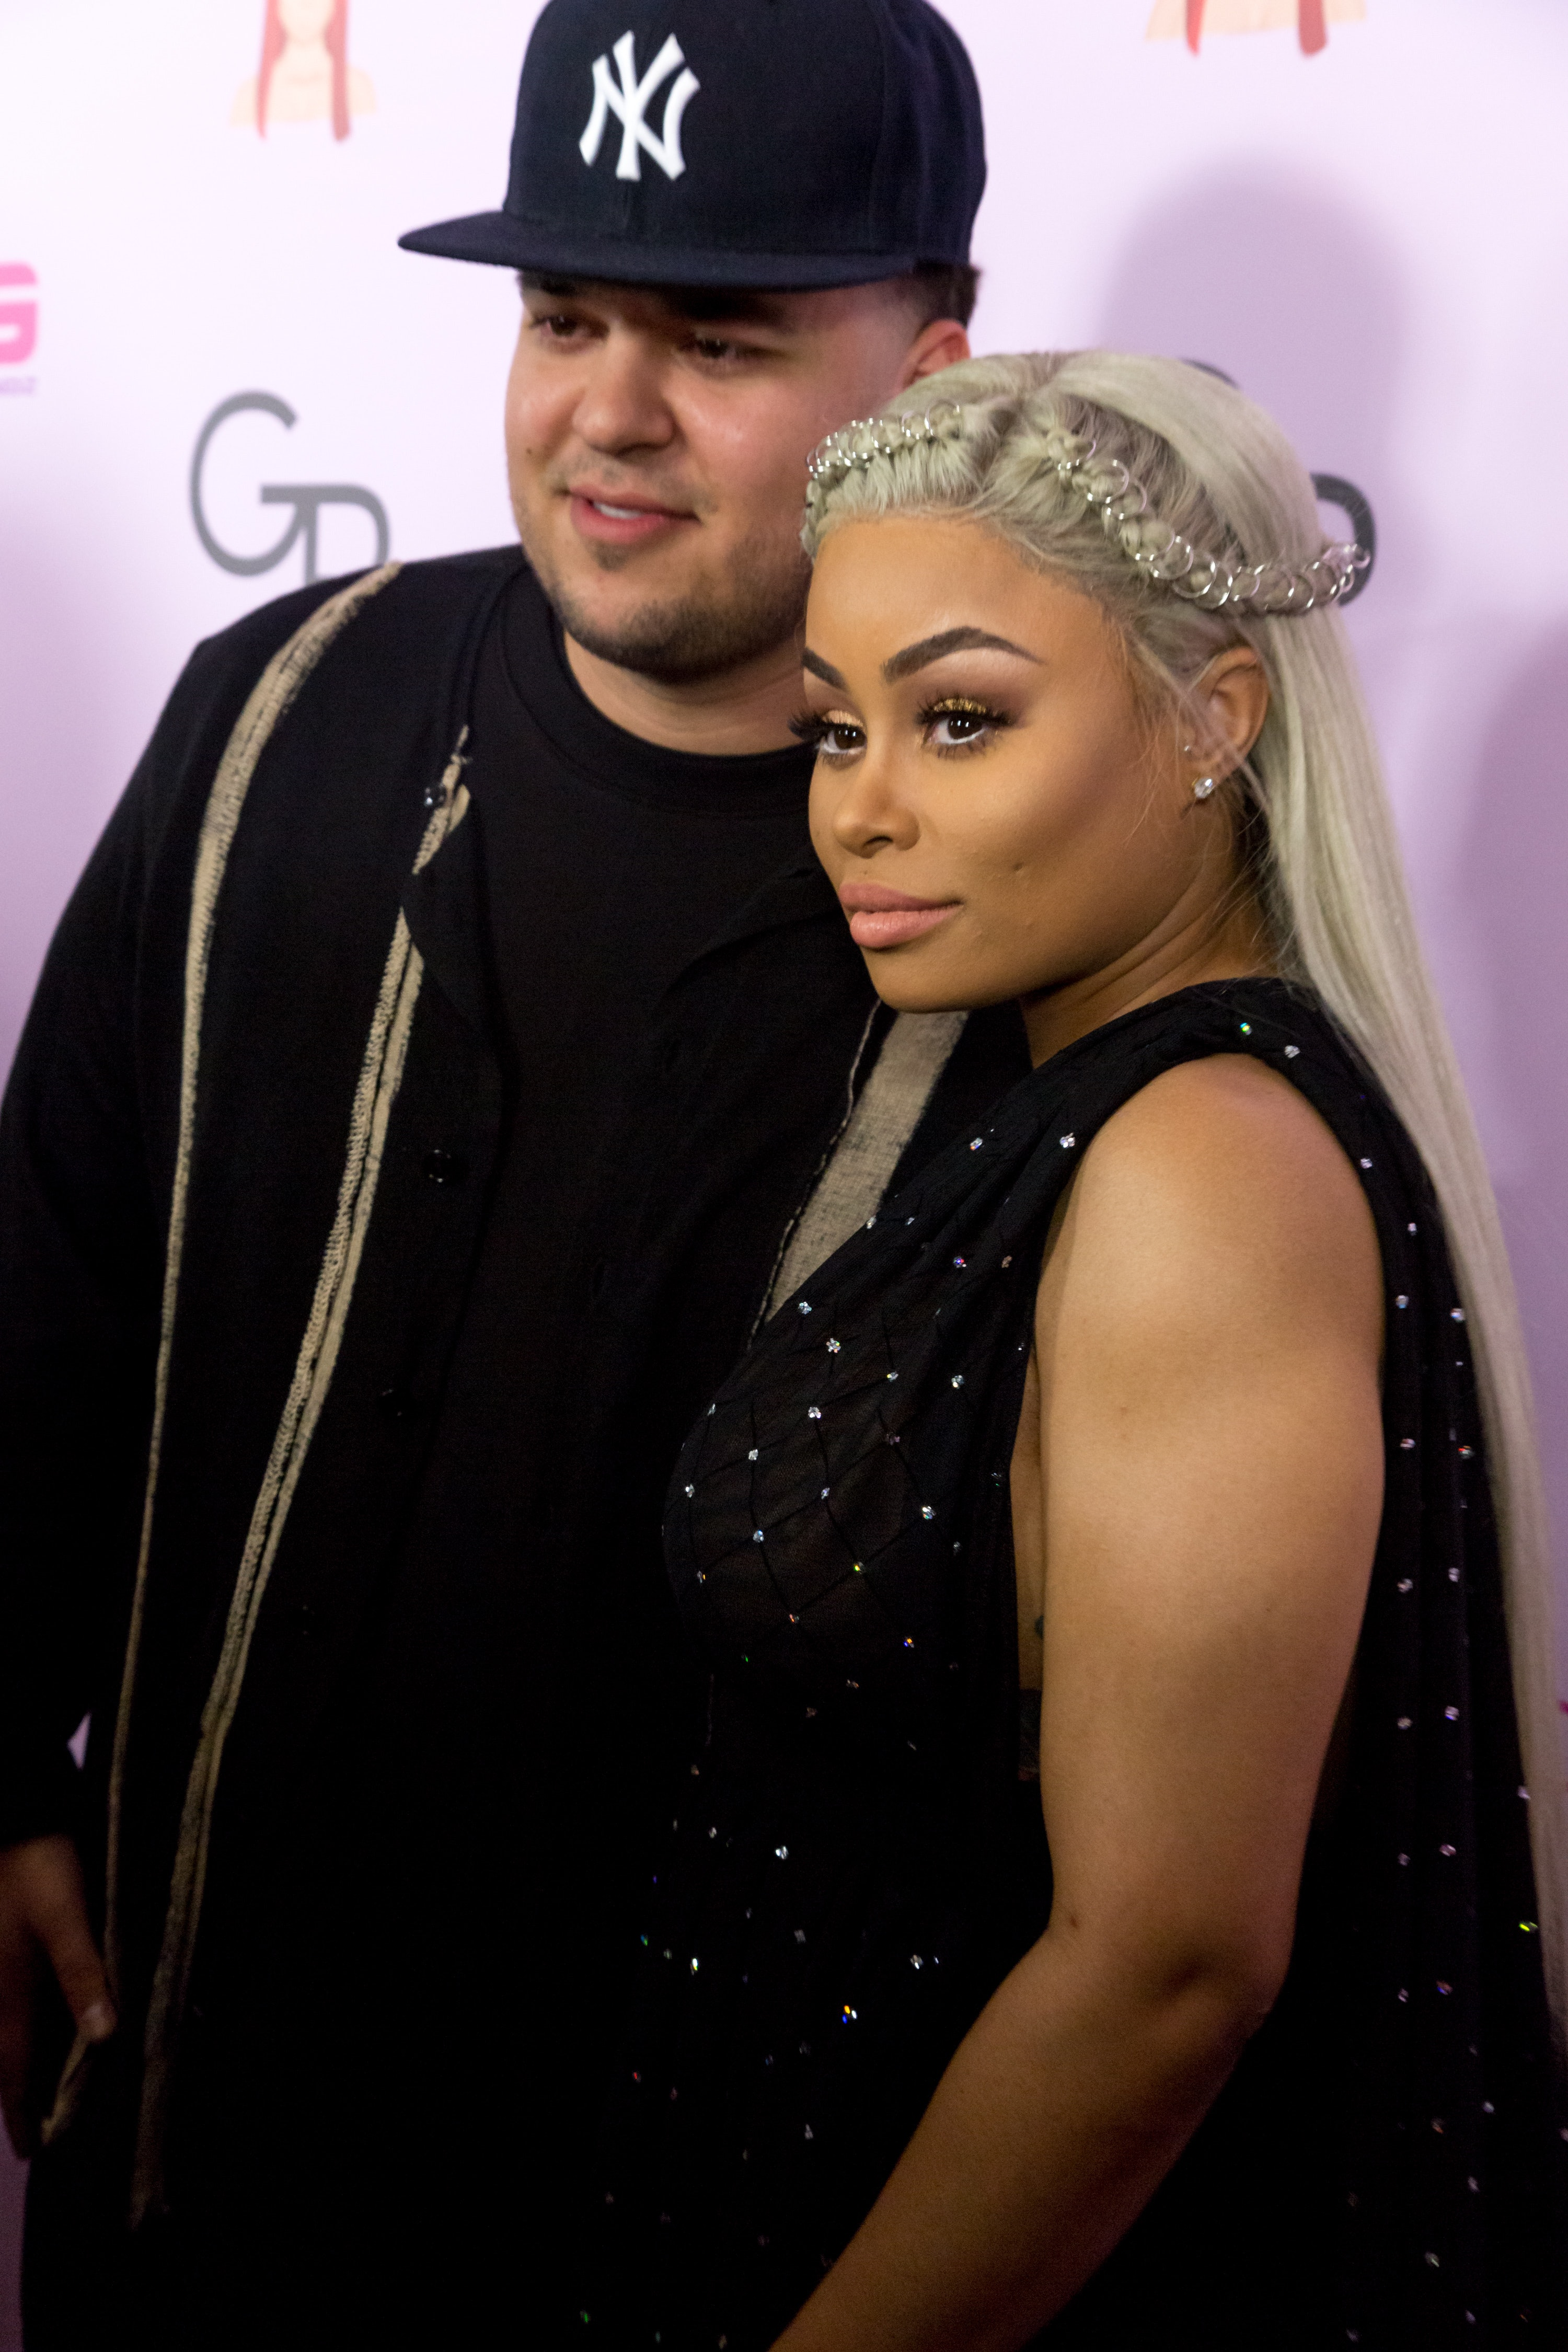 When Will Blac Chyna Have Her Baby Shower? Itu0027s Bound To Be Amazing